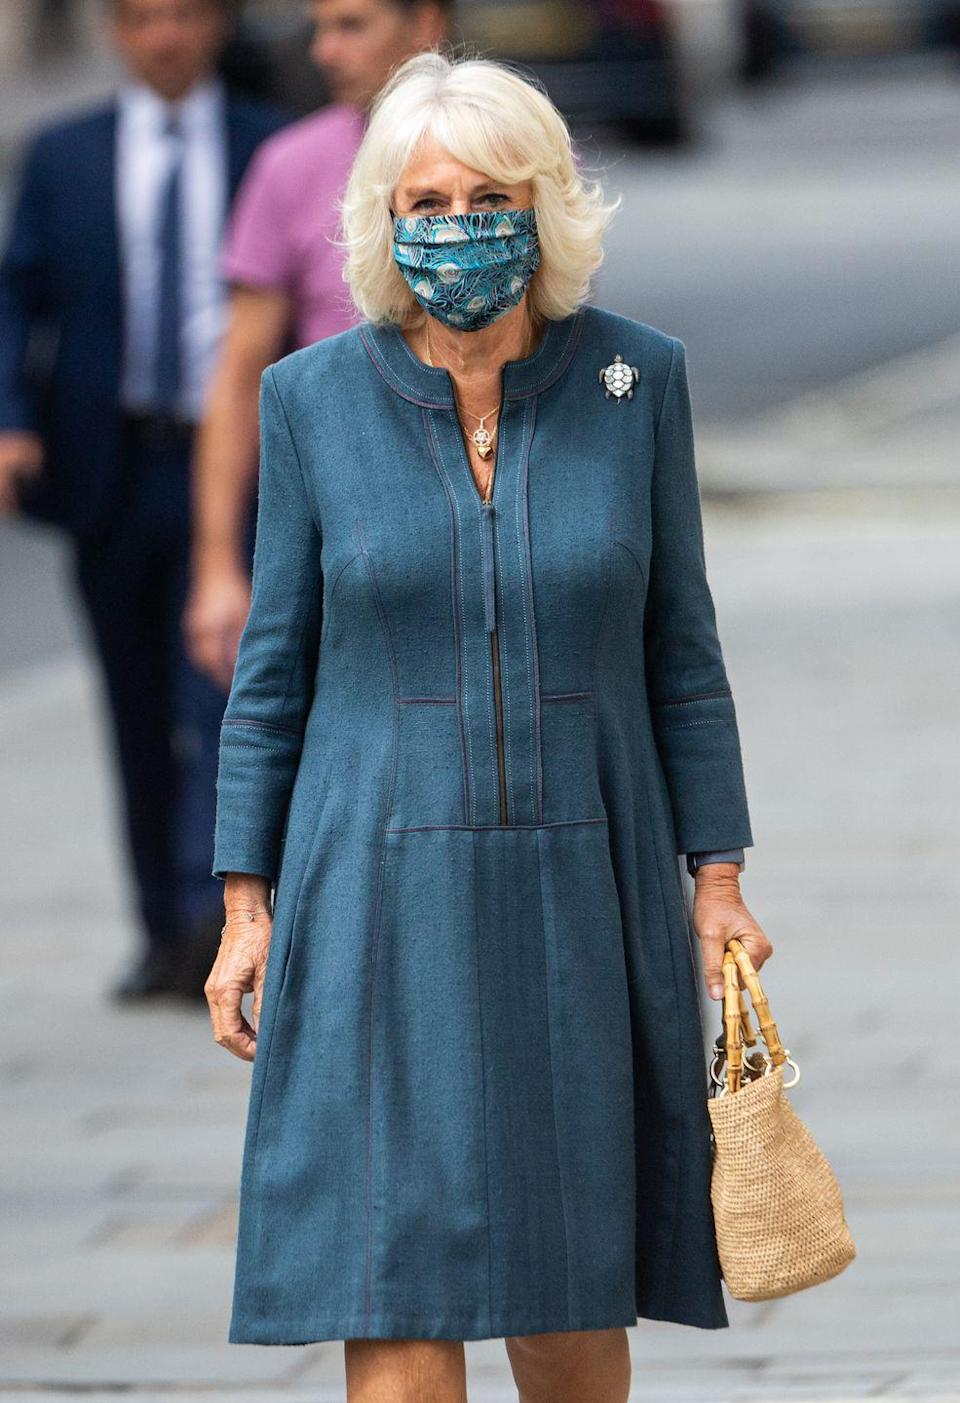 """<p>For her first inside engagement since the coronavirus hit the UK, Camilla paired a blue dress with a turtle-shaped brooch and<a href=""""https://www.townandcountrymag.com/society/tradition/g32616136/queen-elizabeth-princess-charlotte-royal-family-liberty-of-london-print-photos/"""" rel=""""nofollow noopener"""" target=""""_blank"""" data-ylk=""""slk:a Liberty print mask."""" class=""""link rapid-noclick-resp""""> a Liberty print mask.</a></p>"""